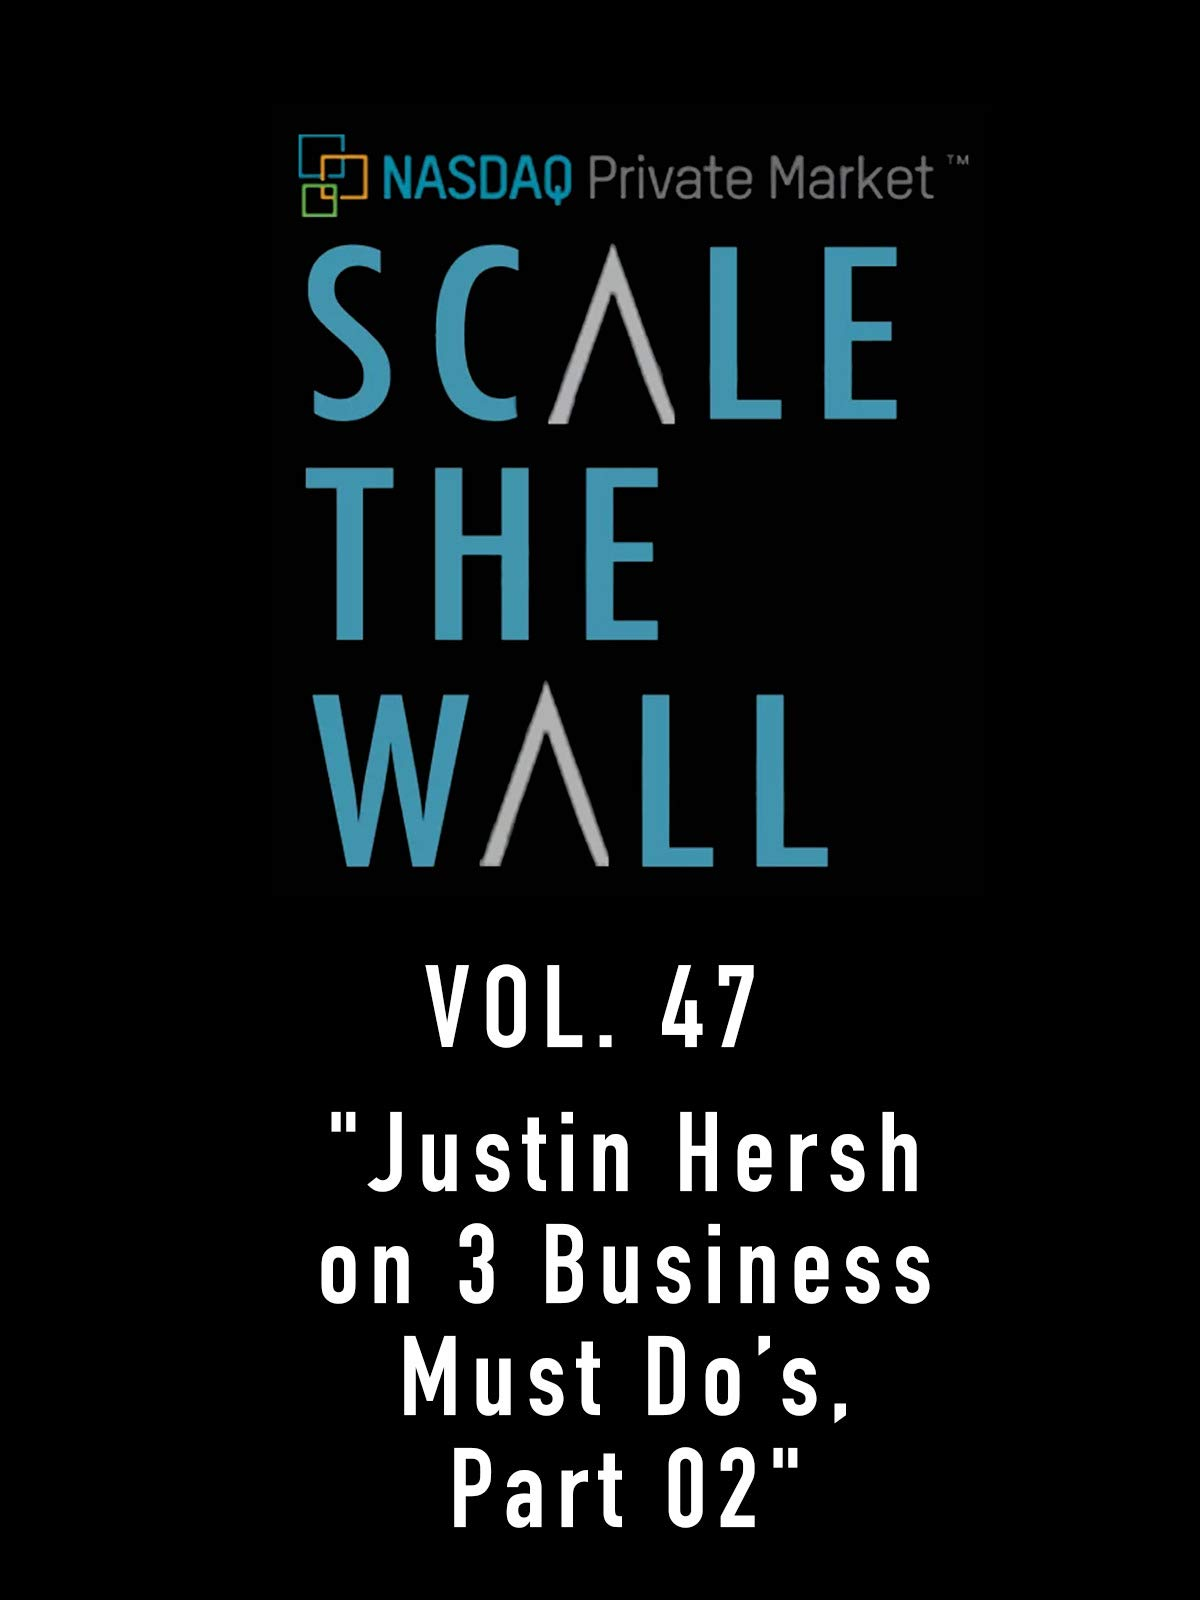 Scale the Wall Vol. 47